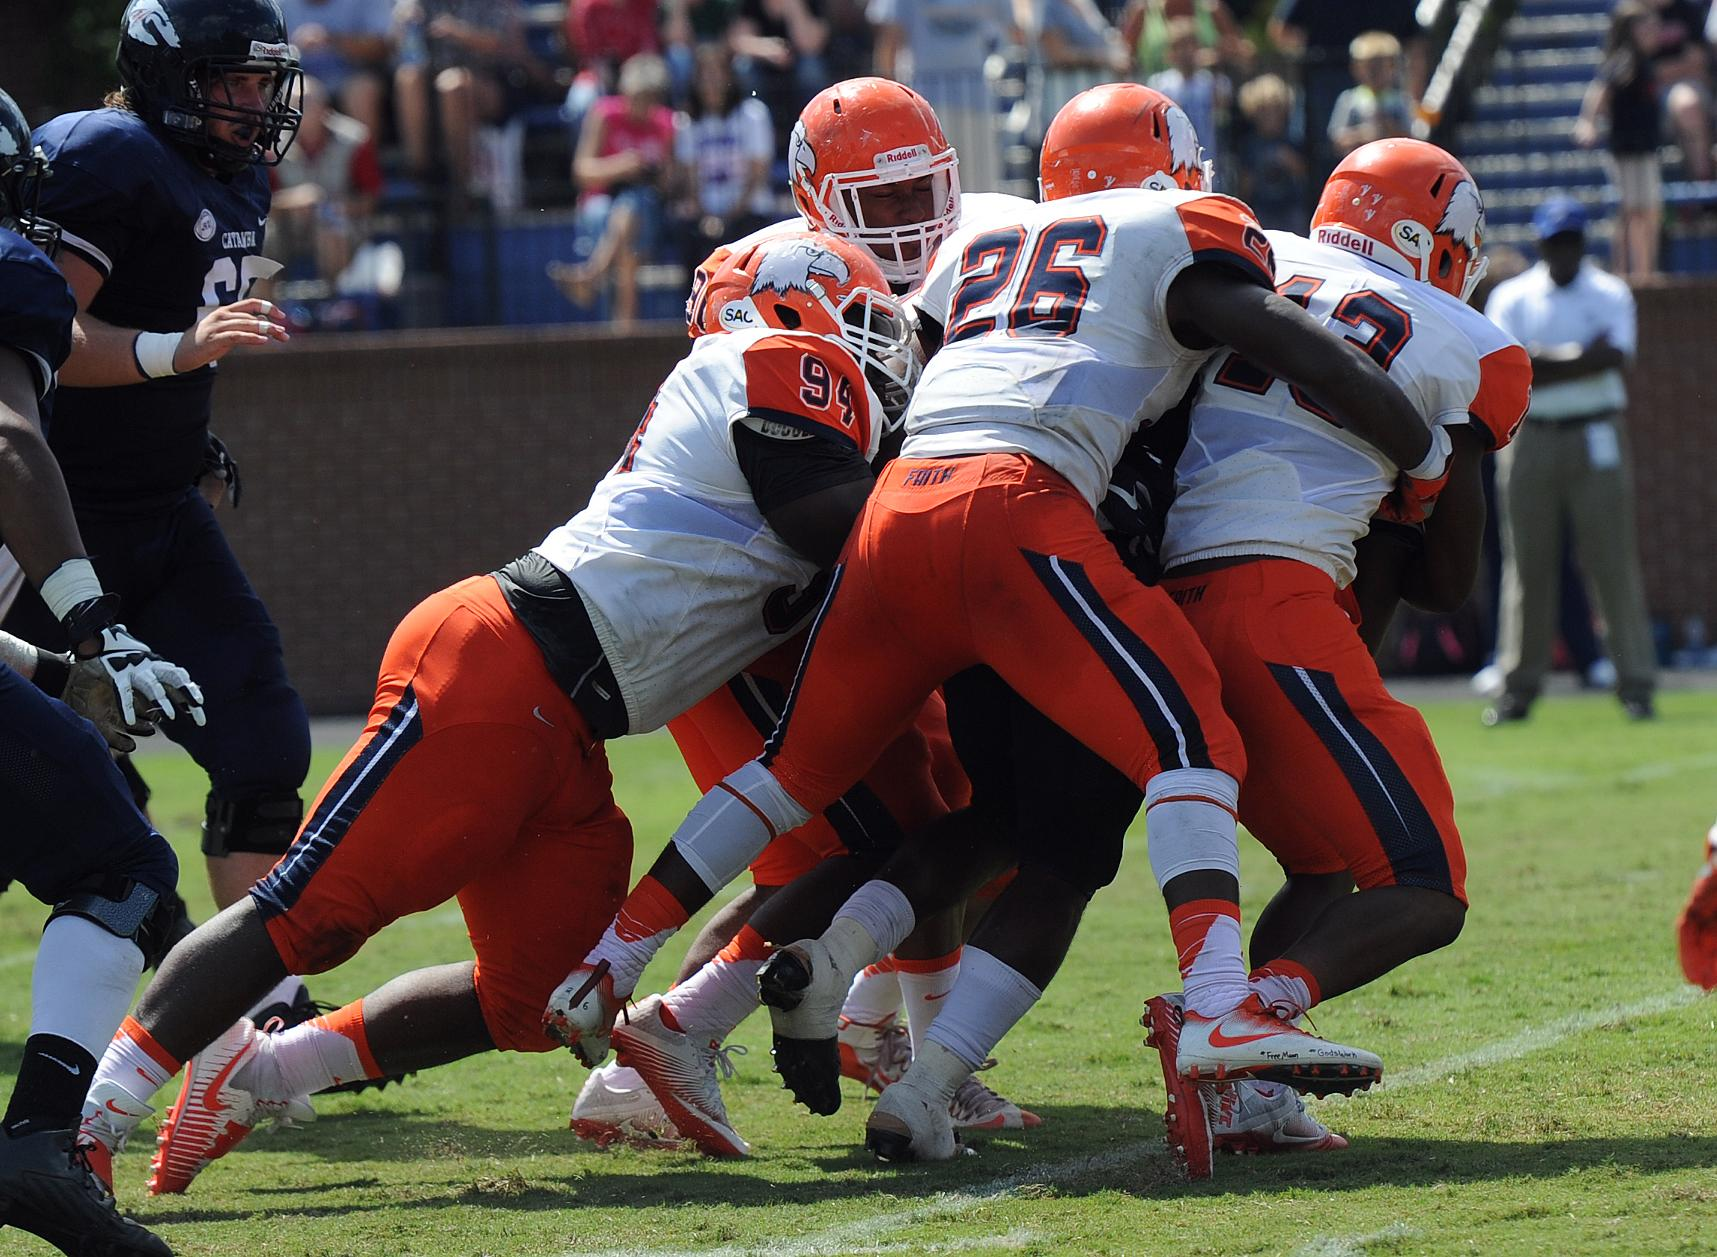 No. 23 Catawba invades The Creek for SAC clash with Carson-Newman